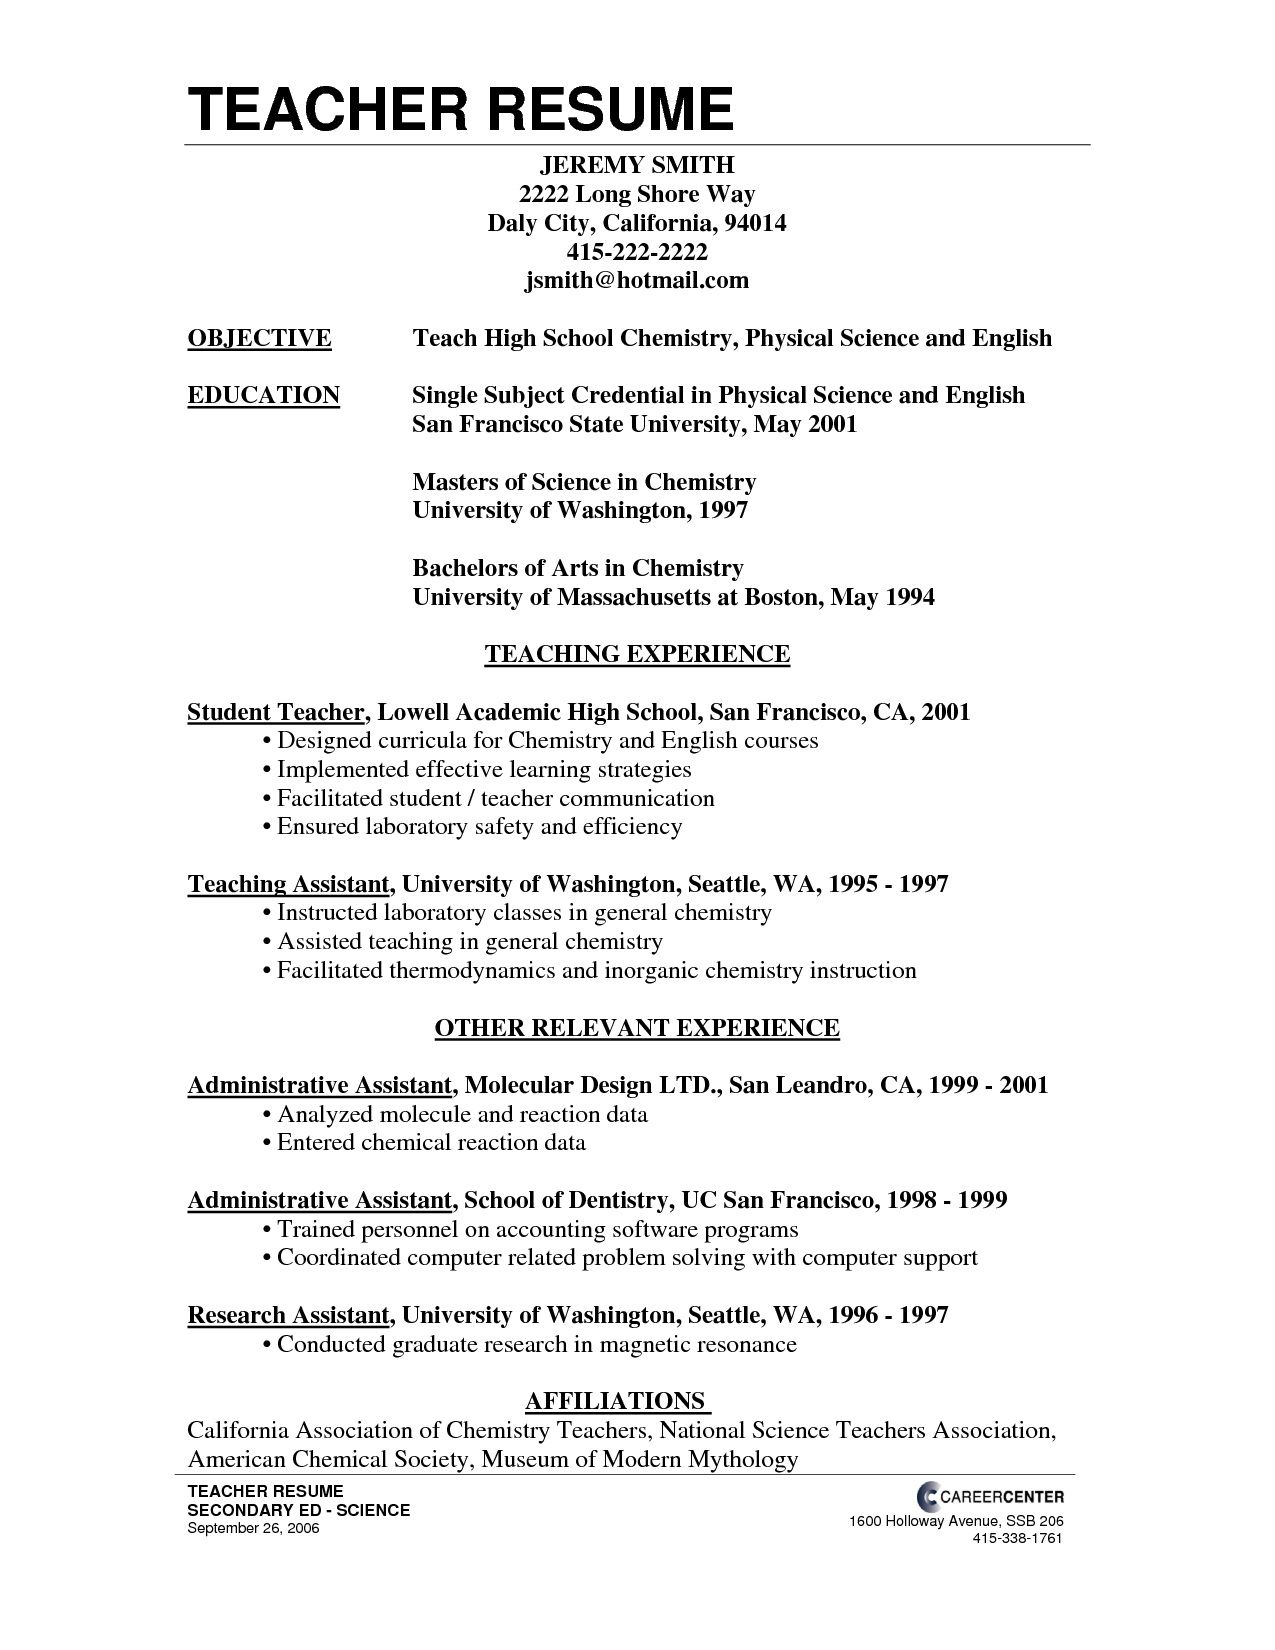 Teacher Resume Examples High School Teacher Resume Http Jobresumesample